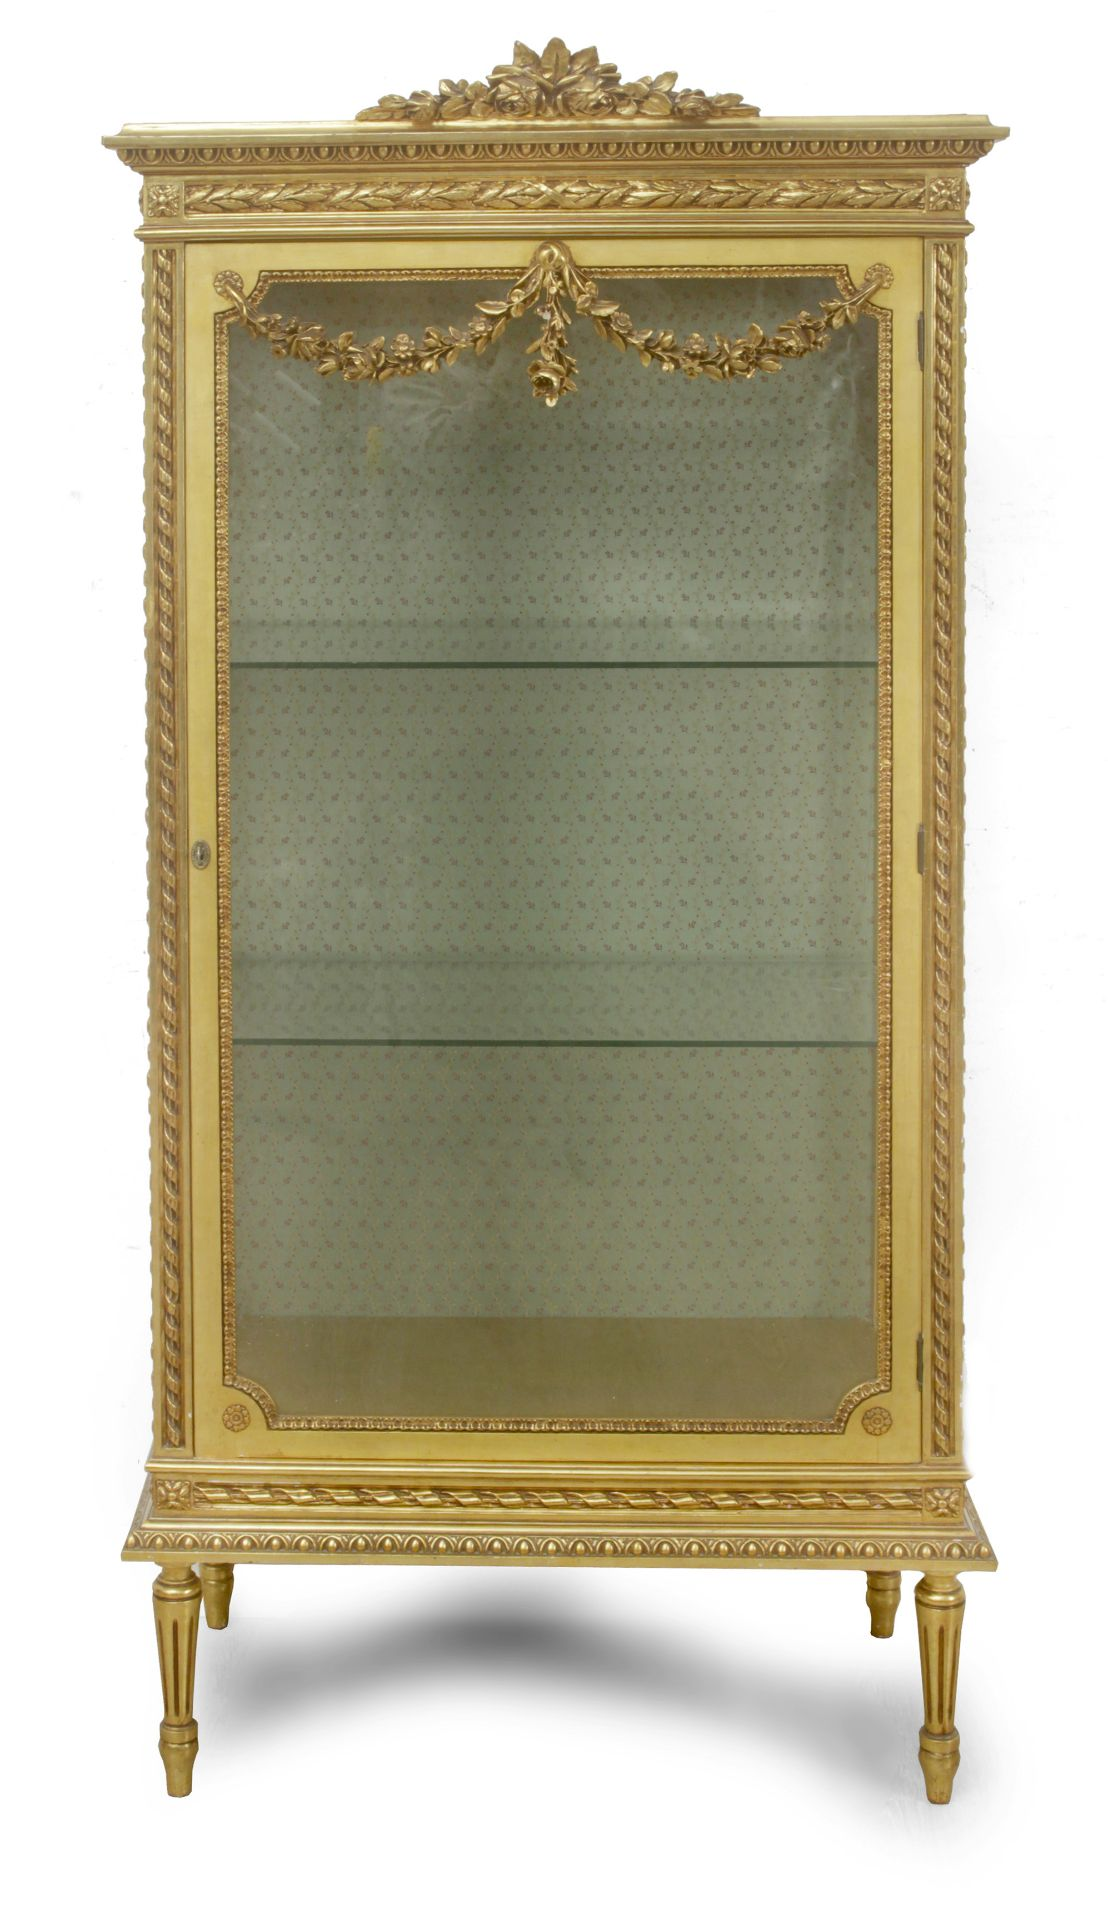 A 20th century Louis XVI style glass cabinet